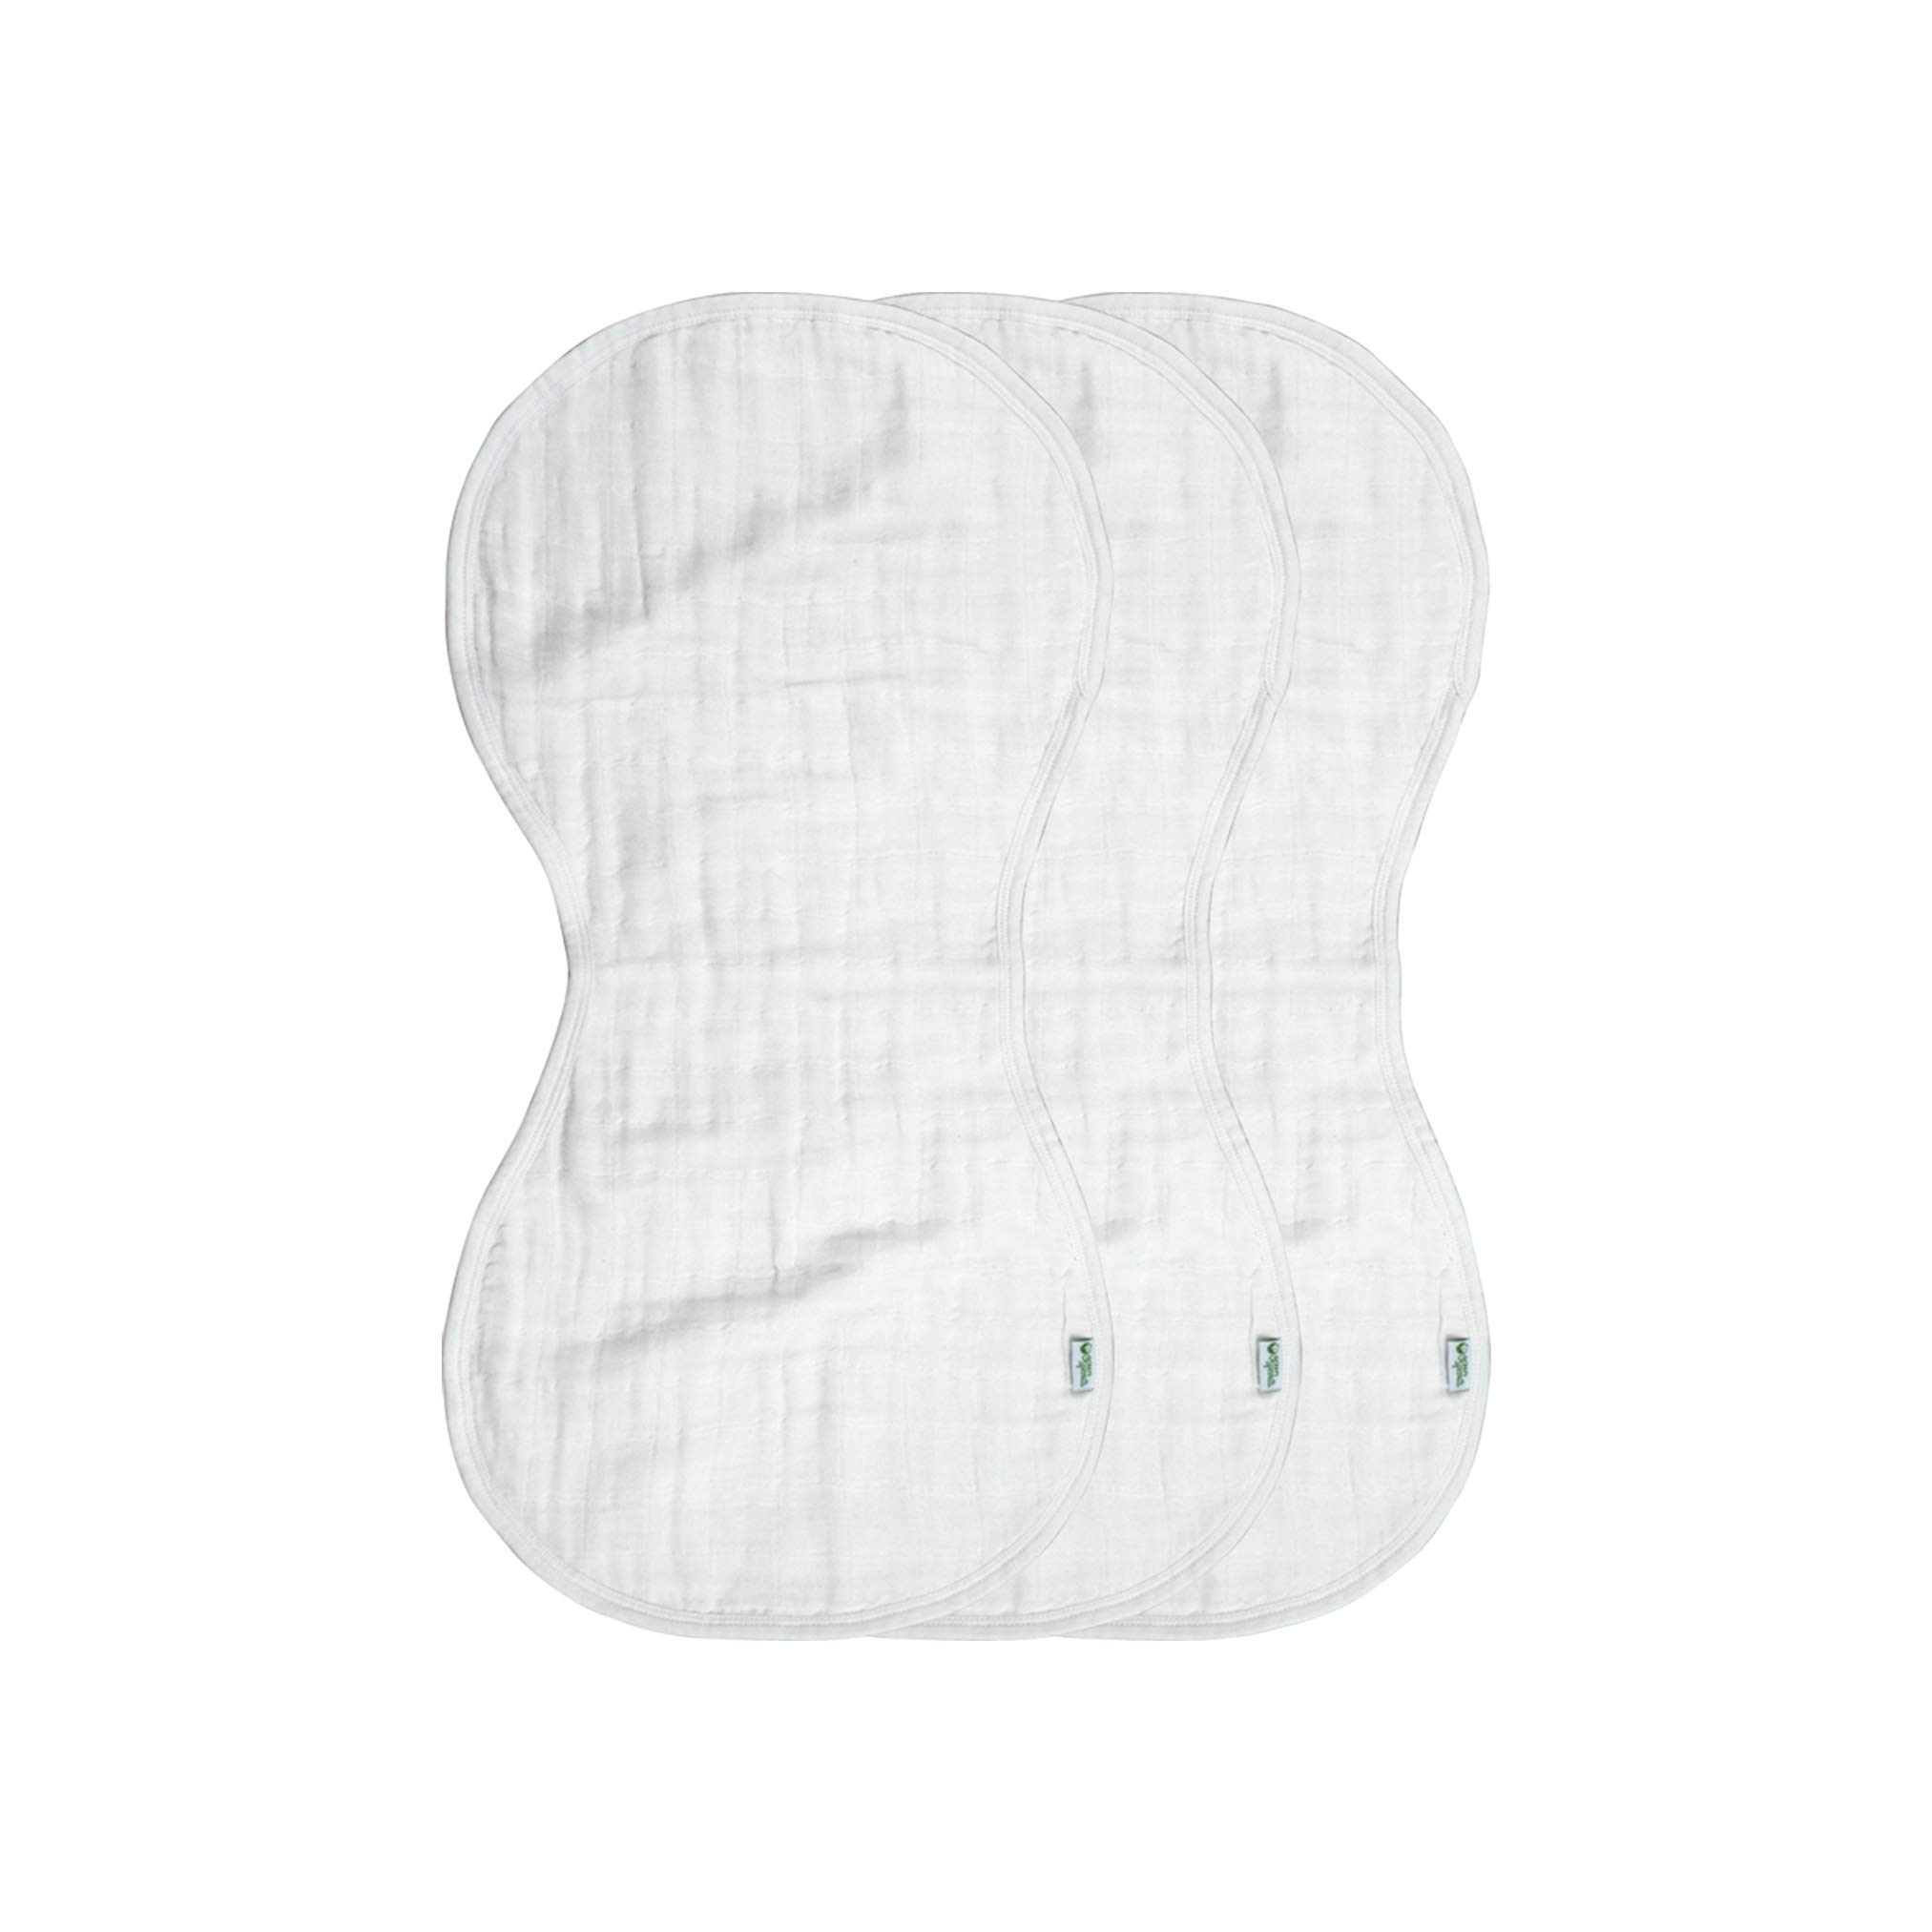 green sprouts Muslin Burp Cloths made from Organic